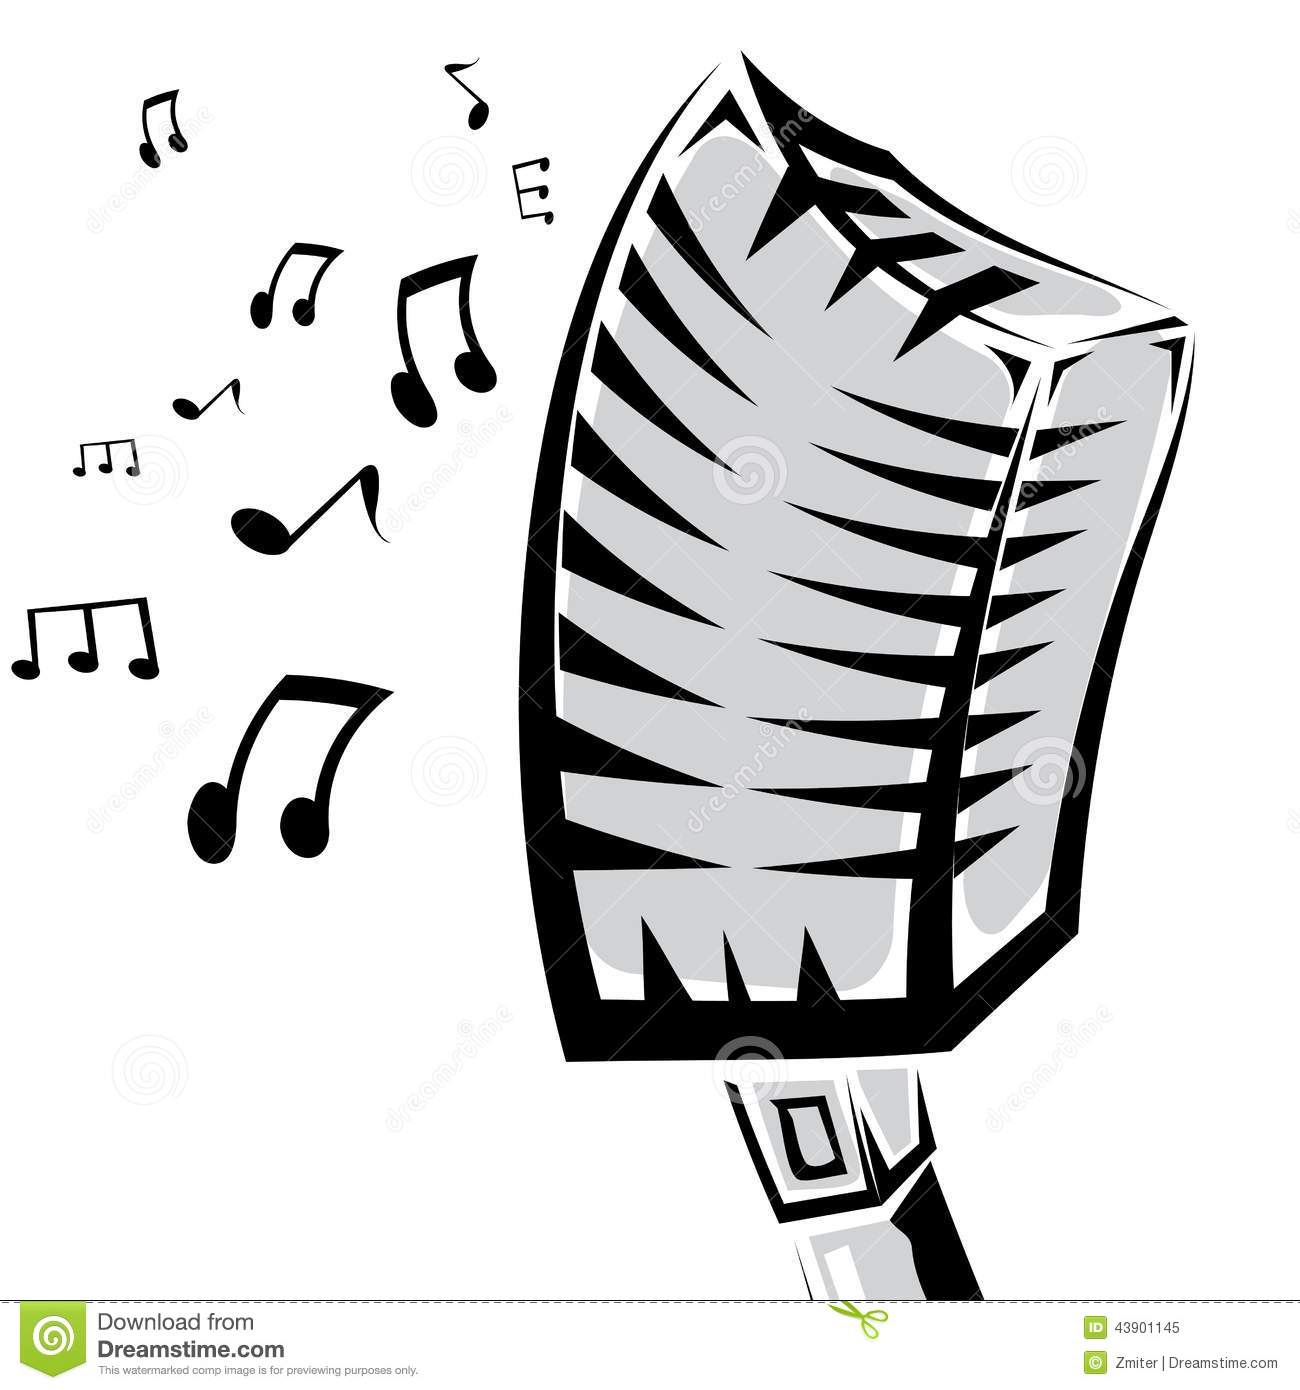 Microphone Silhouette Stock Images, Royalty-Free Images ...